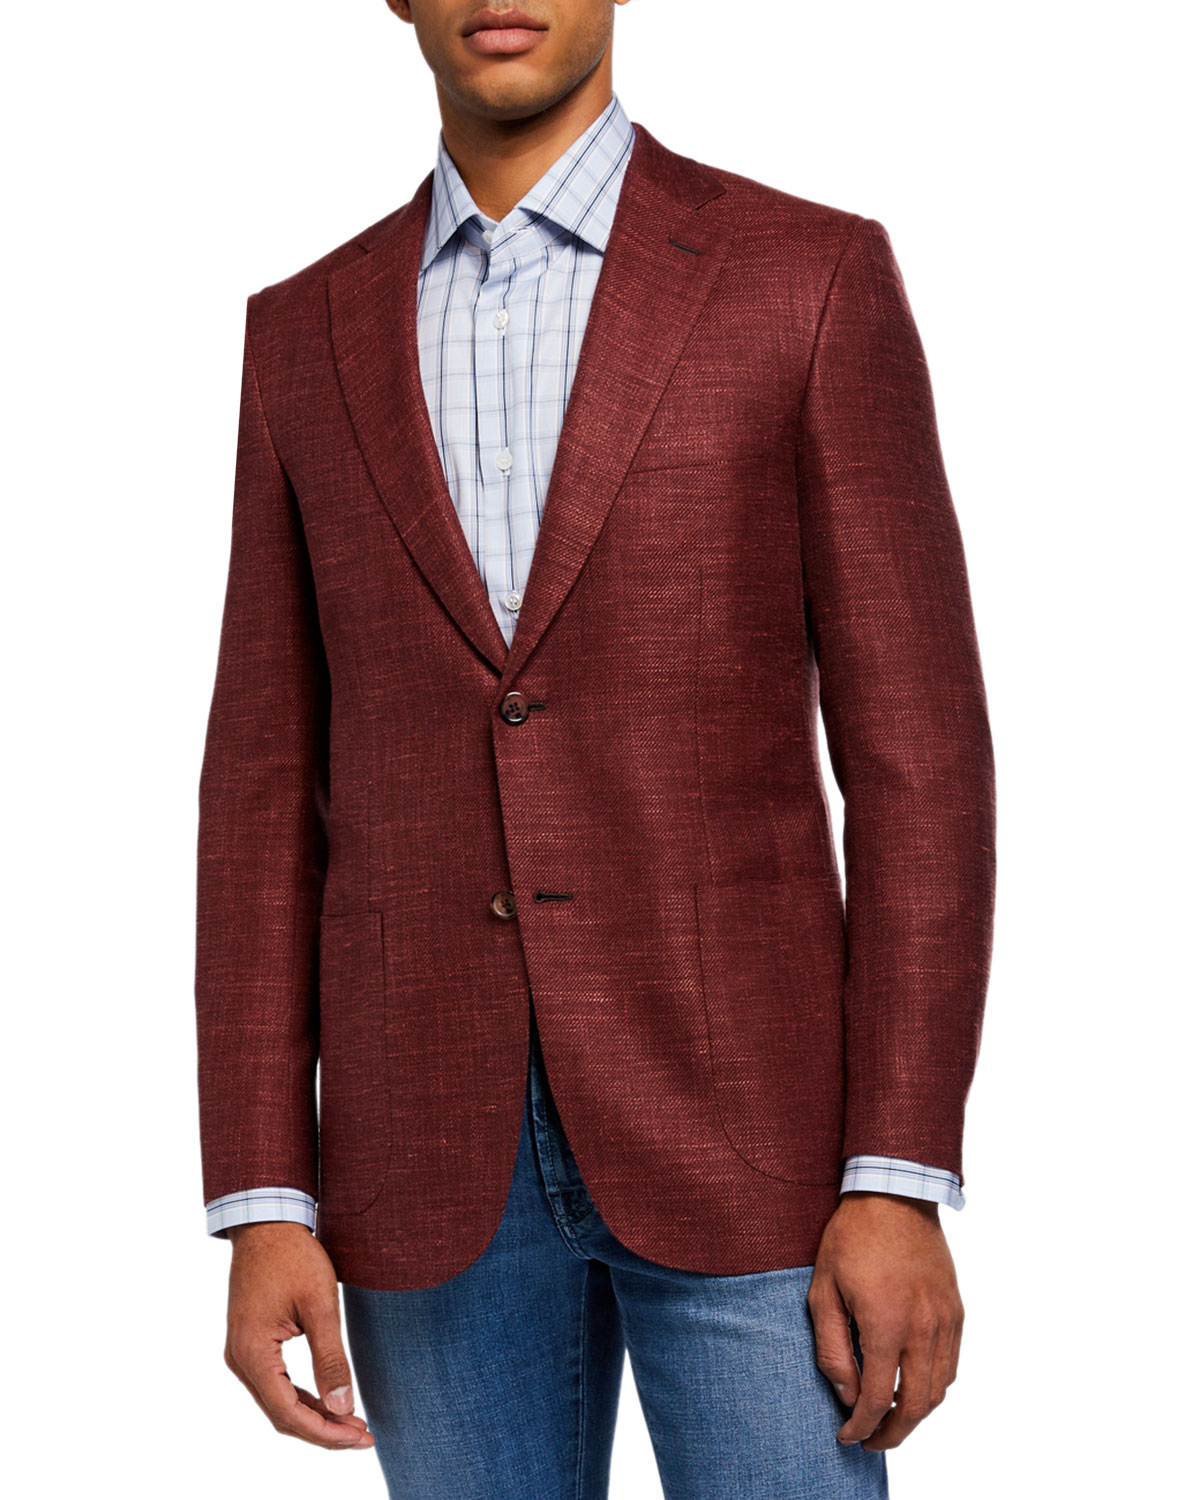 Brioni Men's Textured Two-Button Jacket